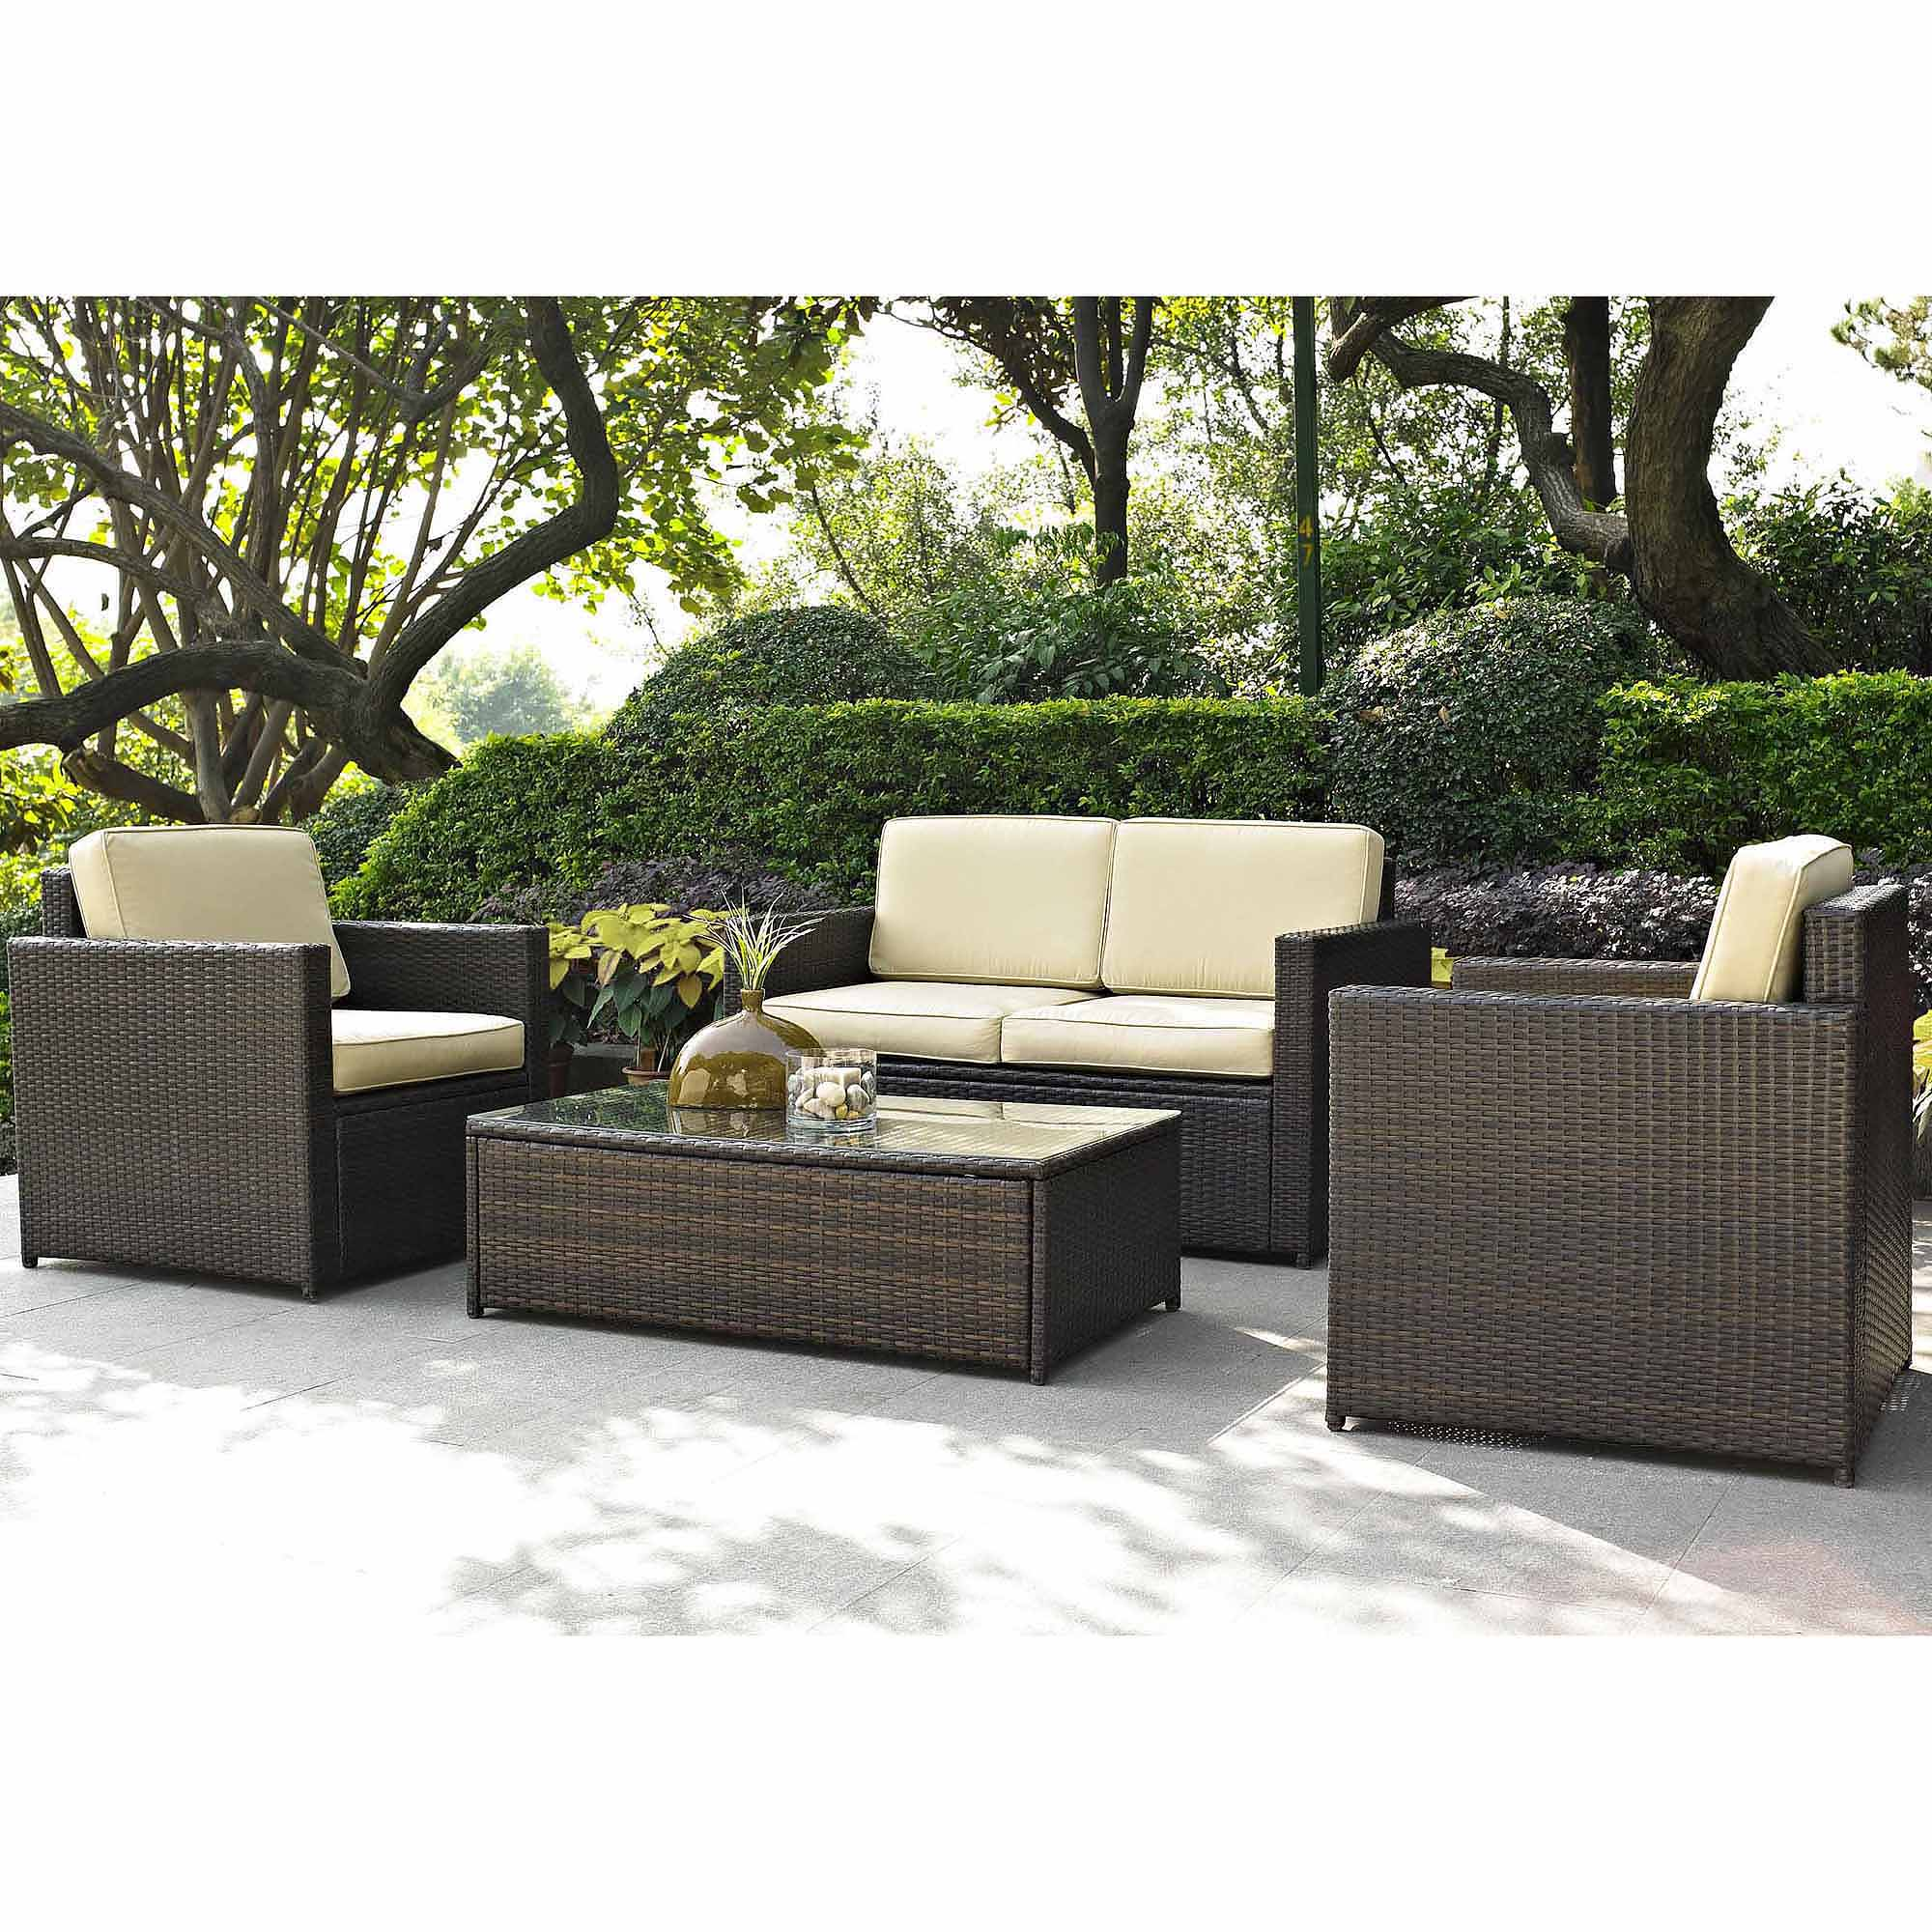 outdoor wicker furniture best choice products outdoor garden patio 4pc cushioned seat black wicker  sofa furniture set - walmart.com REGJCSE